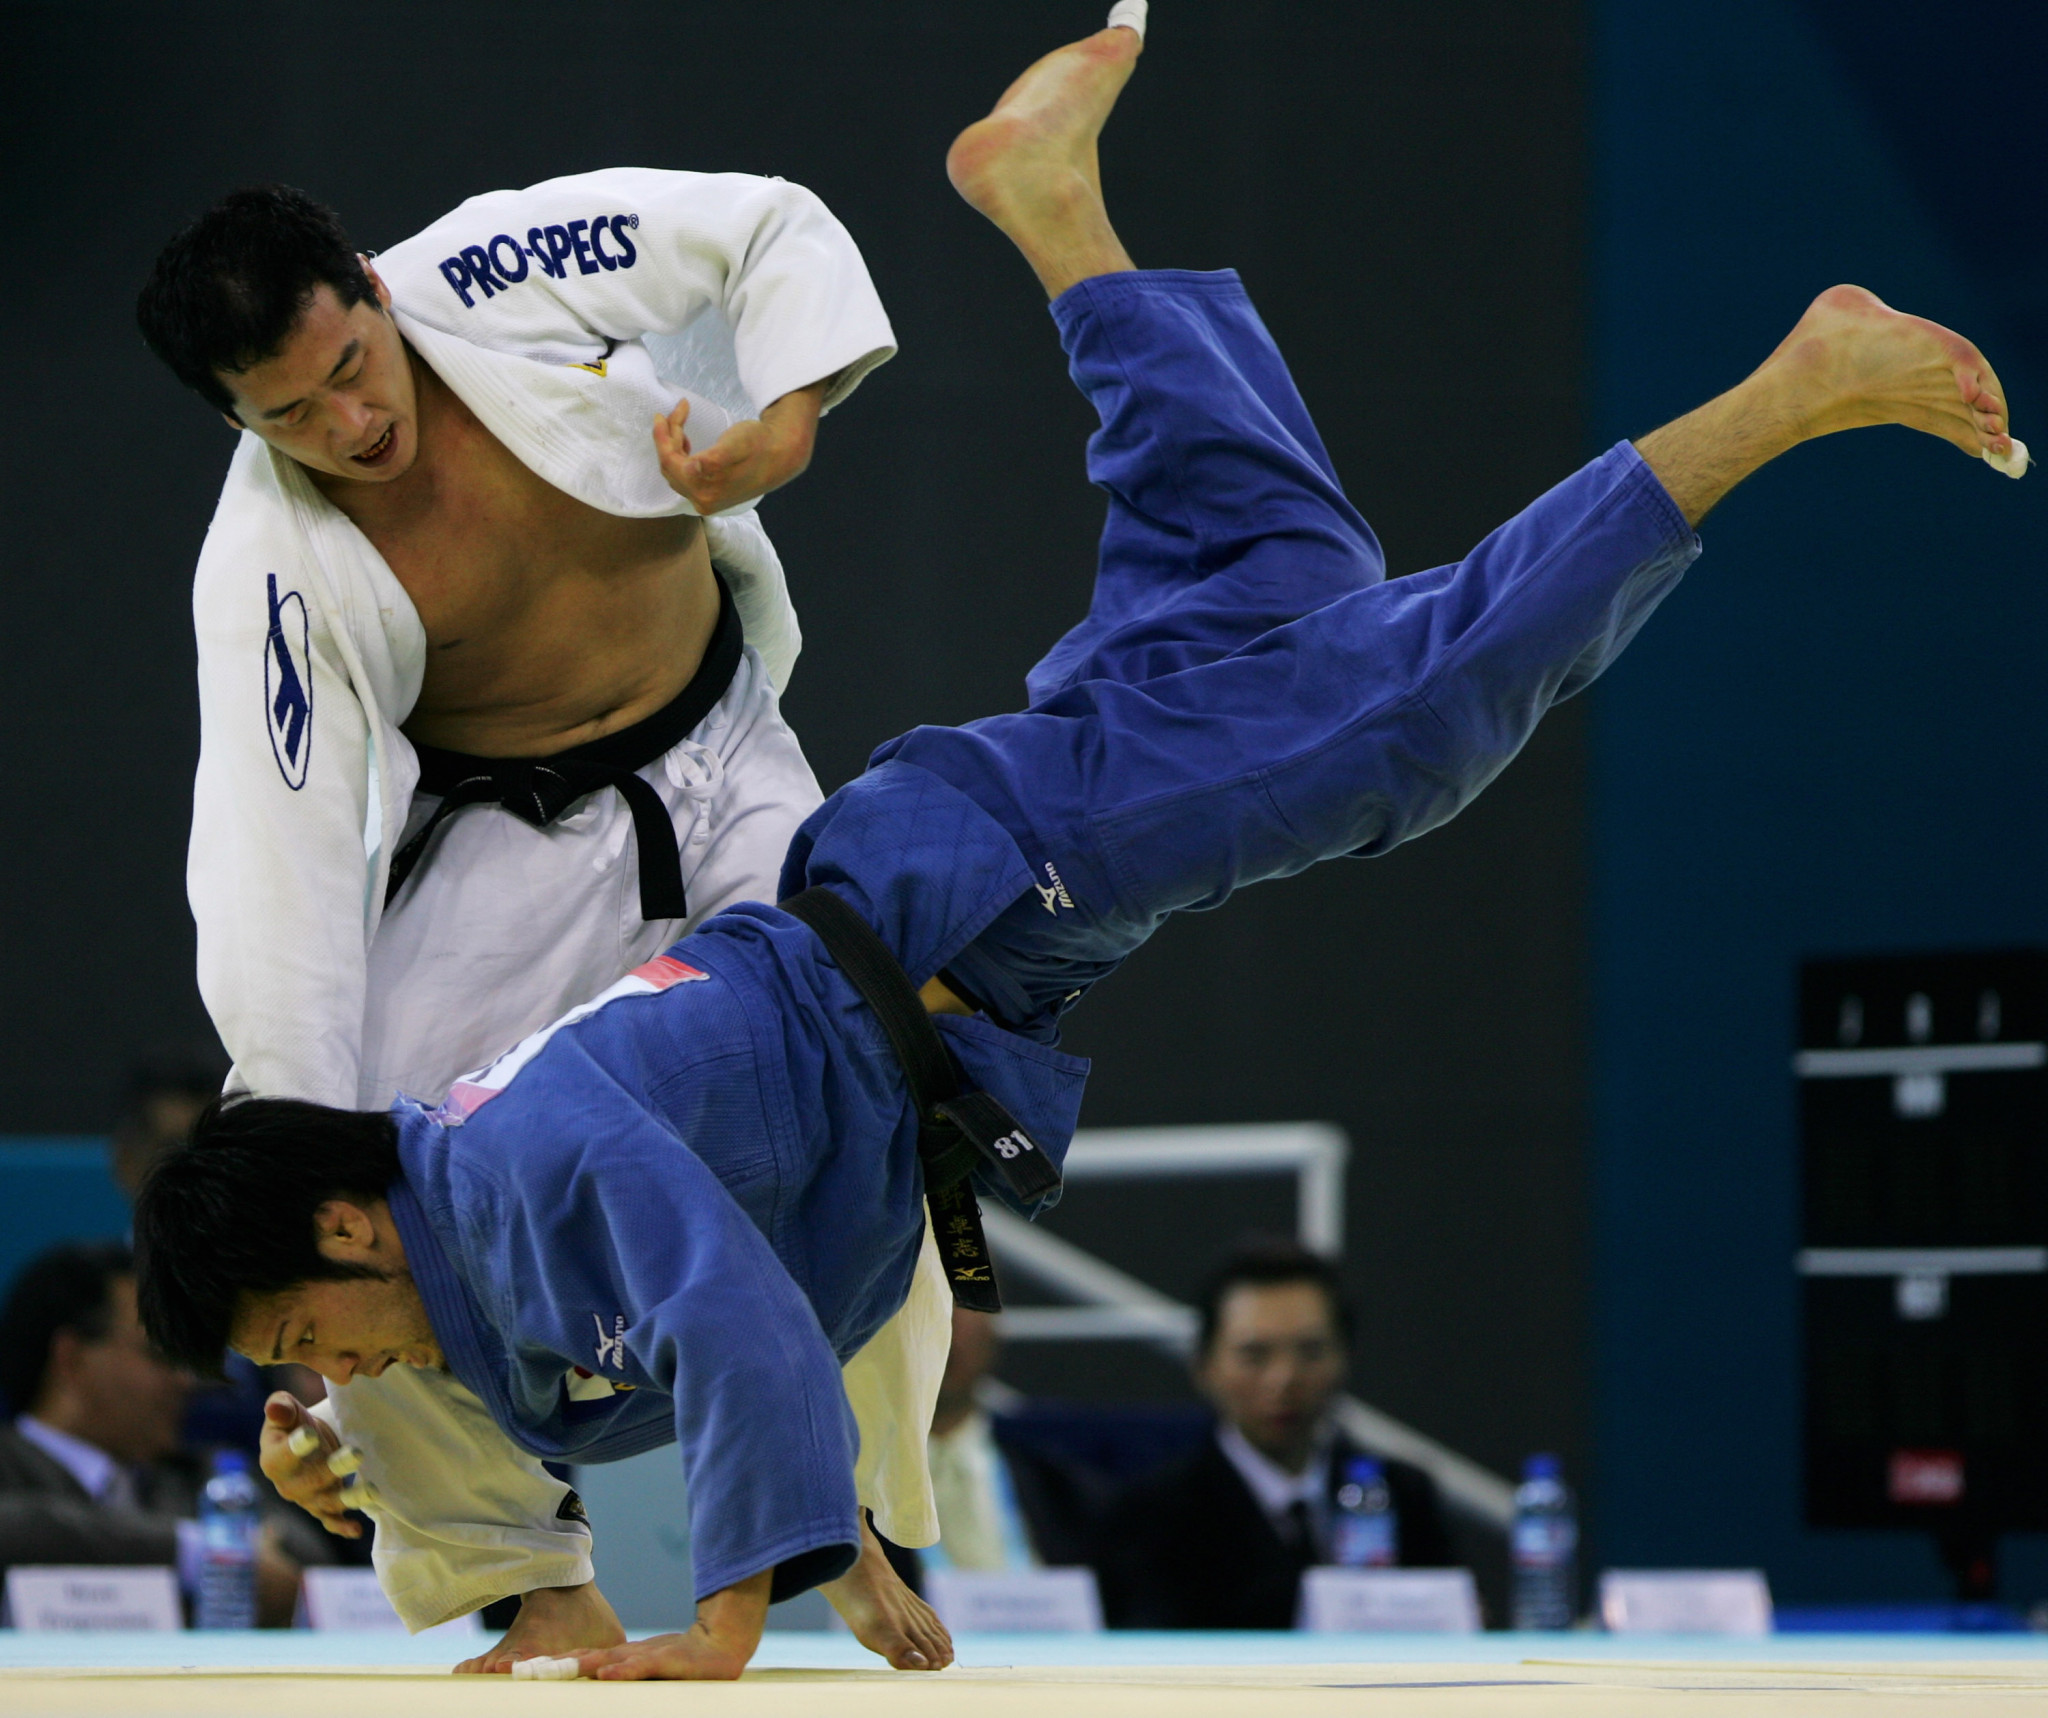 Min Sun Aea (White) of Korea competes with Takashi Ono (Blue) of Japan in the men's 81kg category final during the Good Luck Beijing 2007 Judo Open at the University of Science and Technology Gymnasium on November 16, 2007 in Beijing,China ©Getty Images